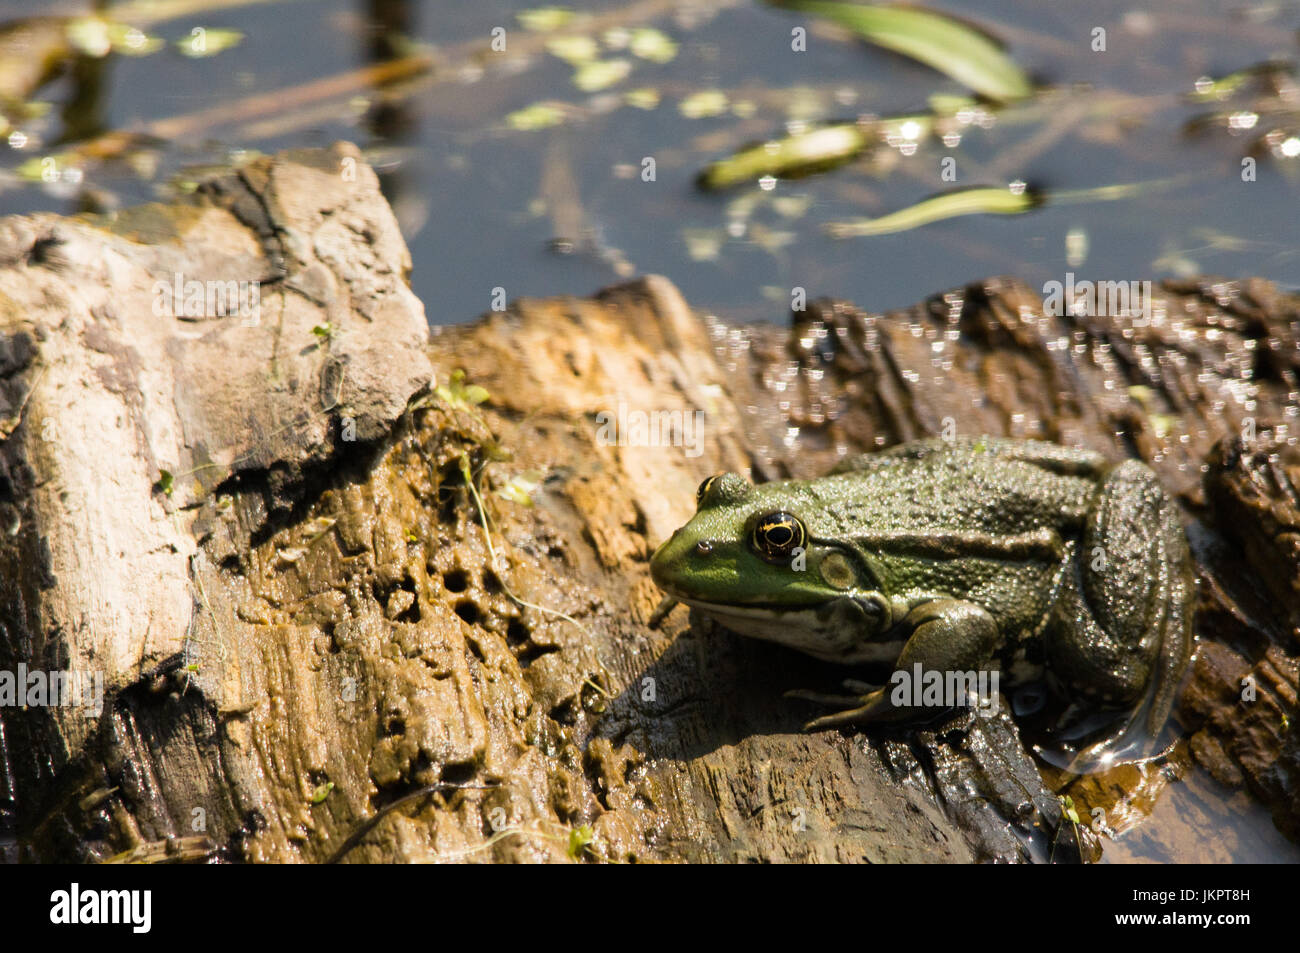 Common Frog, Sat on a log in a pond. UK - Stock Image